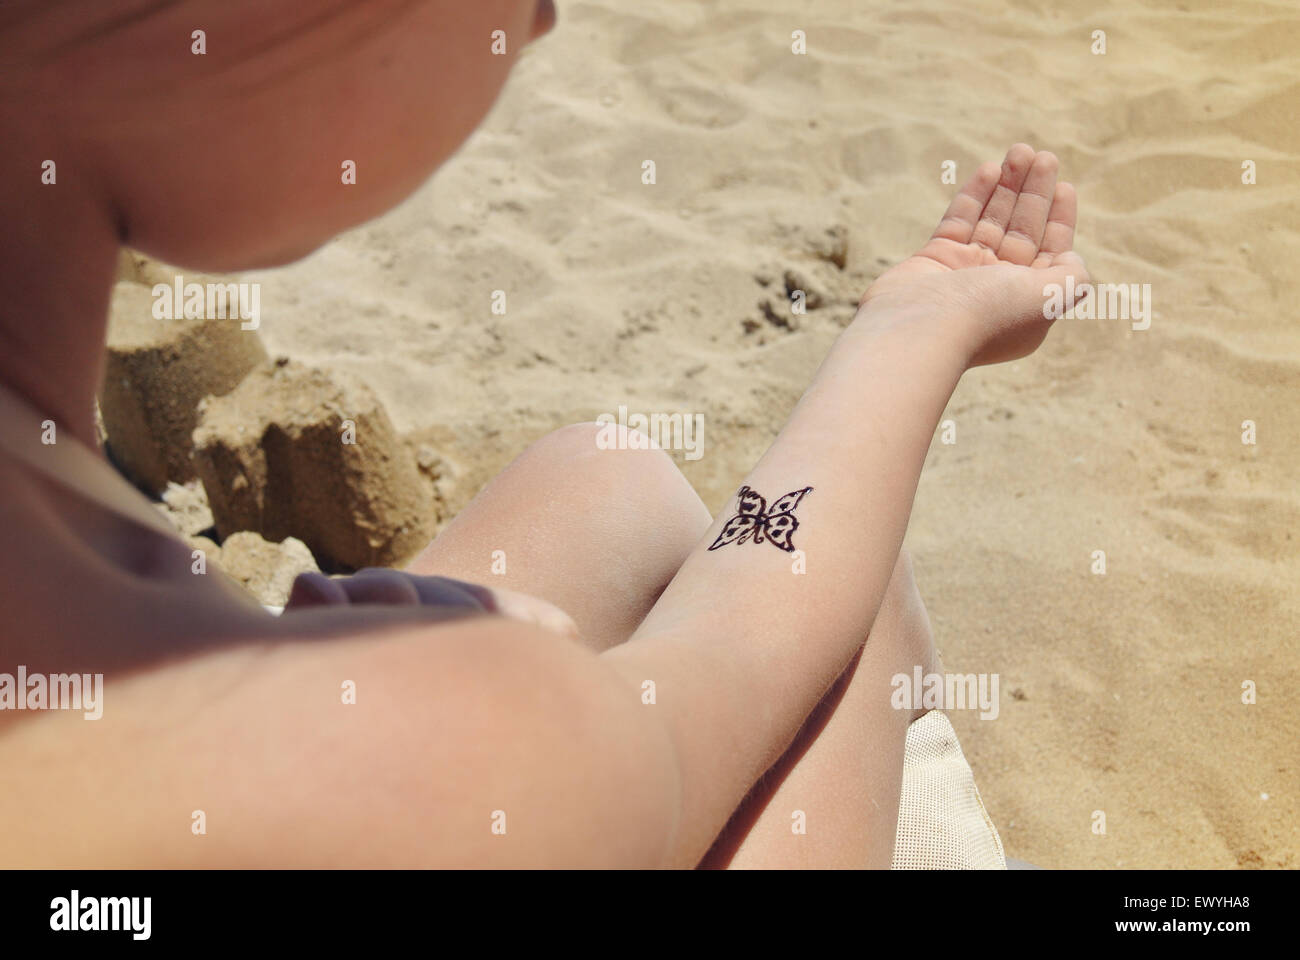 Girl on the beach with a temporary butterfly tattoo on her arm - Stock Image